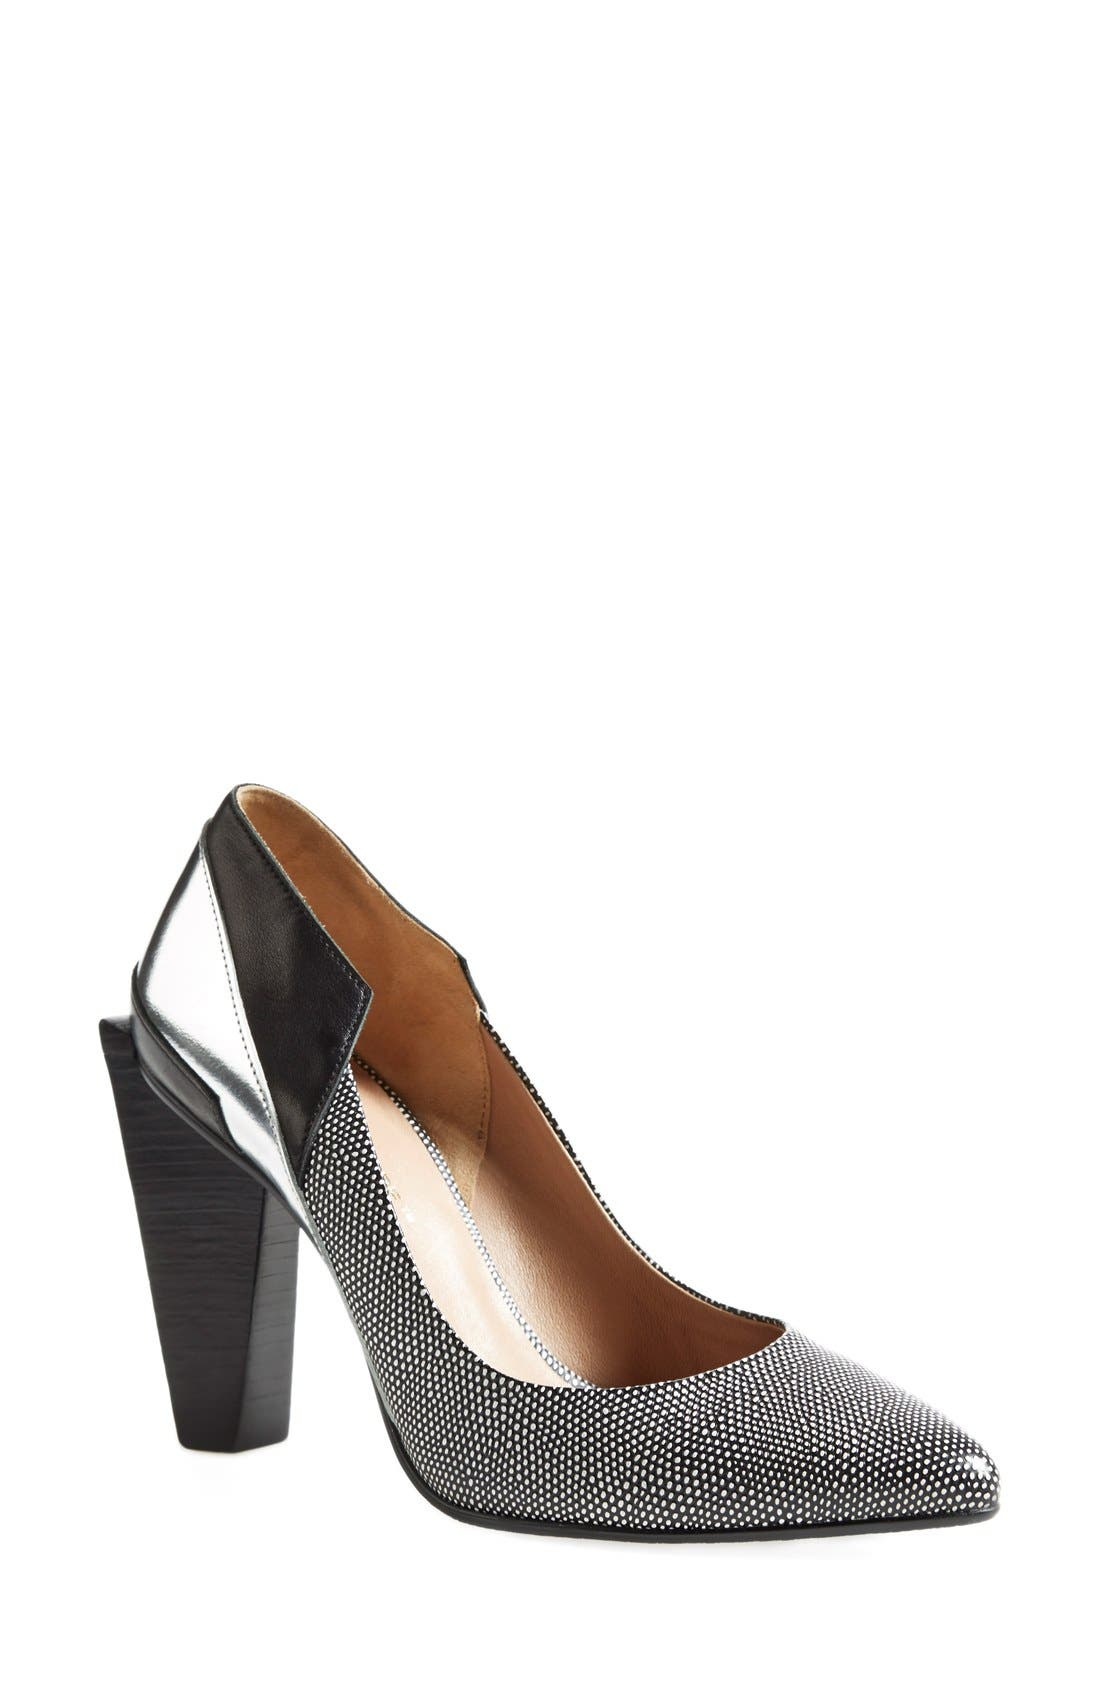 UNITED NUDE COLLECTION,                             'Ruby Hi' Pump,                             Main thumbnail 1, color,                             006